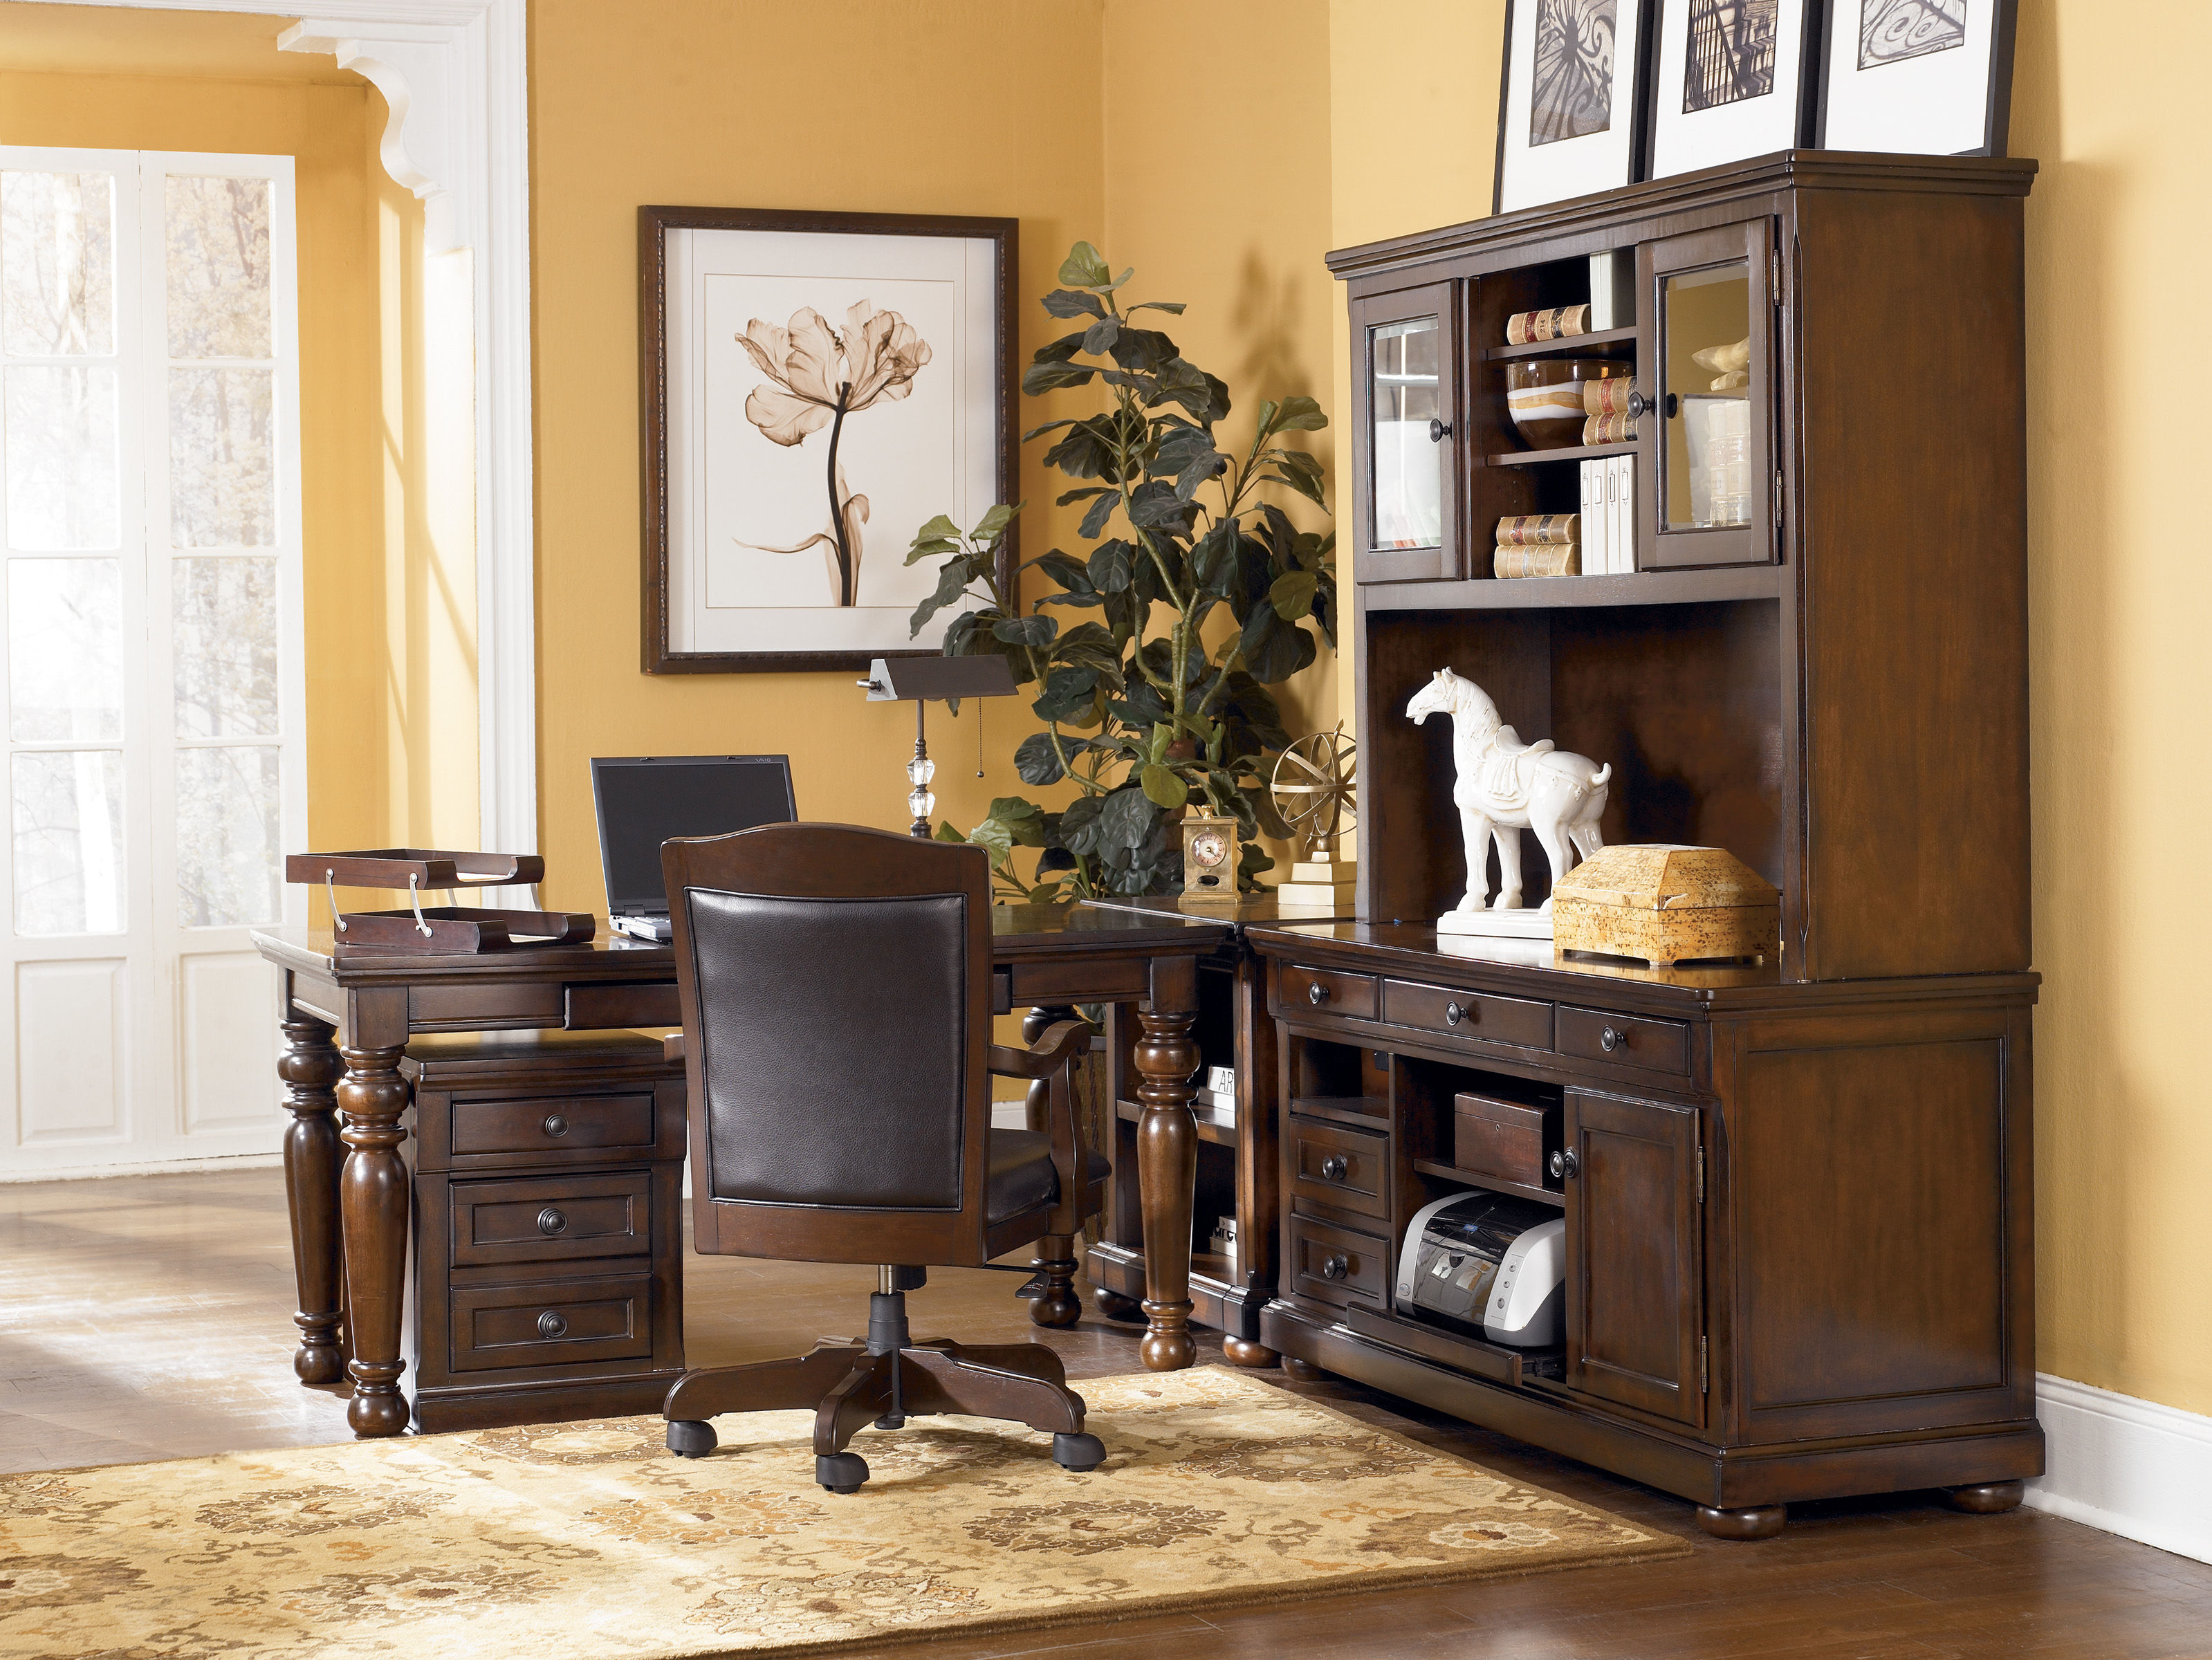 Porter Traditional Brown Wood PVC Office Furniture Set  : H697 44 49 47 46 12 01A SD from www.theclassyhome.com size 3198 x 2400 jpeg 1265kB